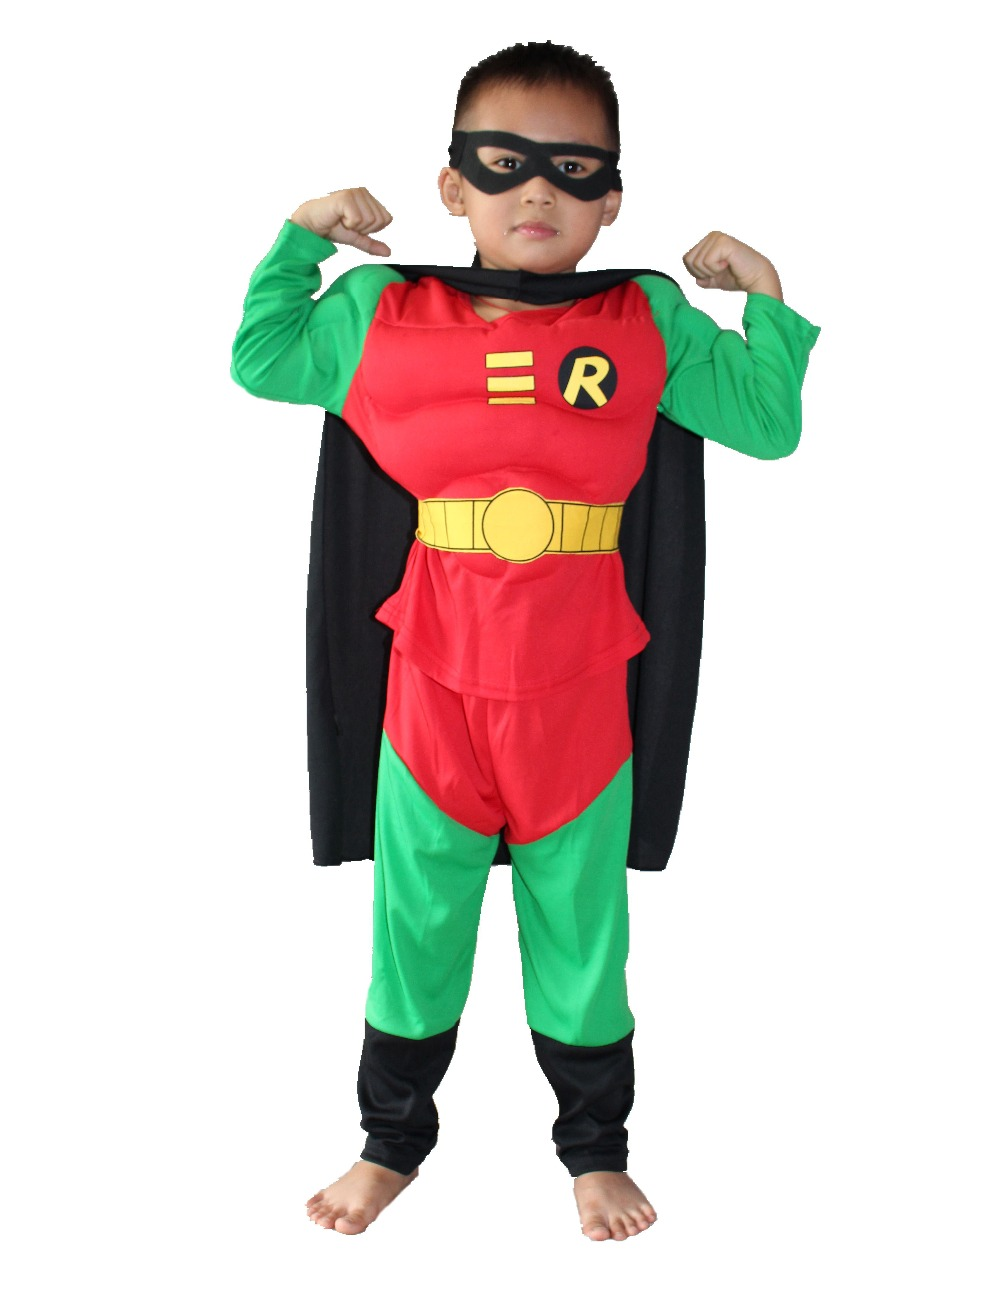 Halloween Party costumes Children's muscle model clothing,kid muscle Robin Role-playing clothing,Long-sleeved T-shirt 16806#